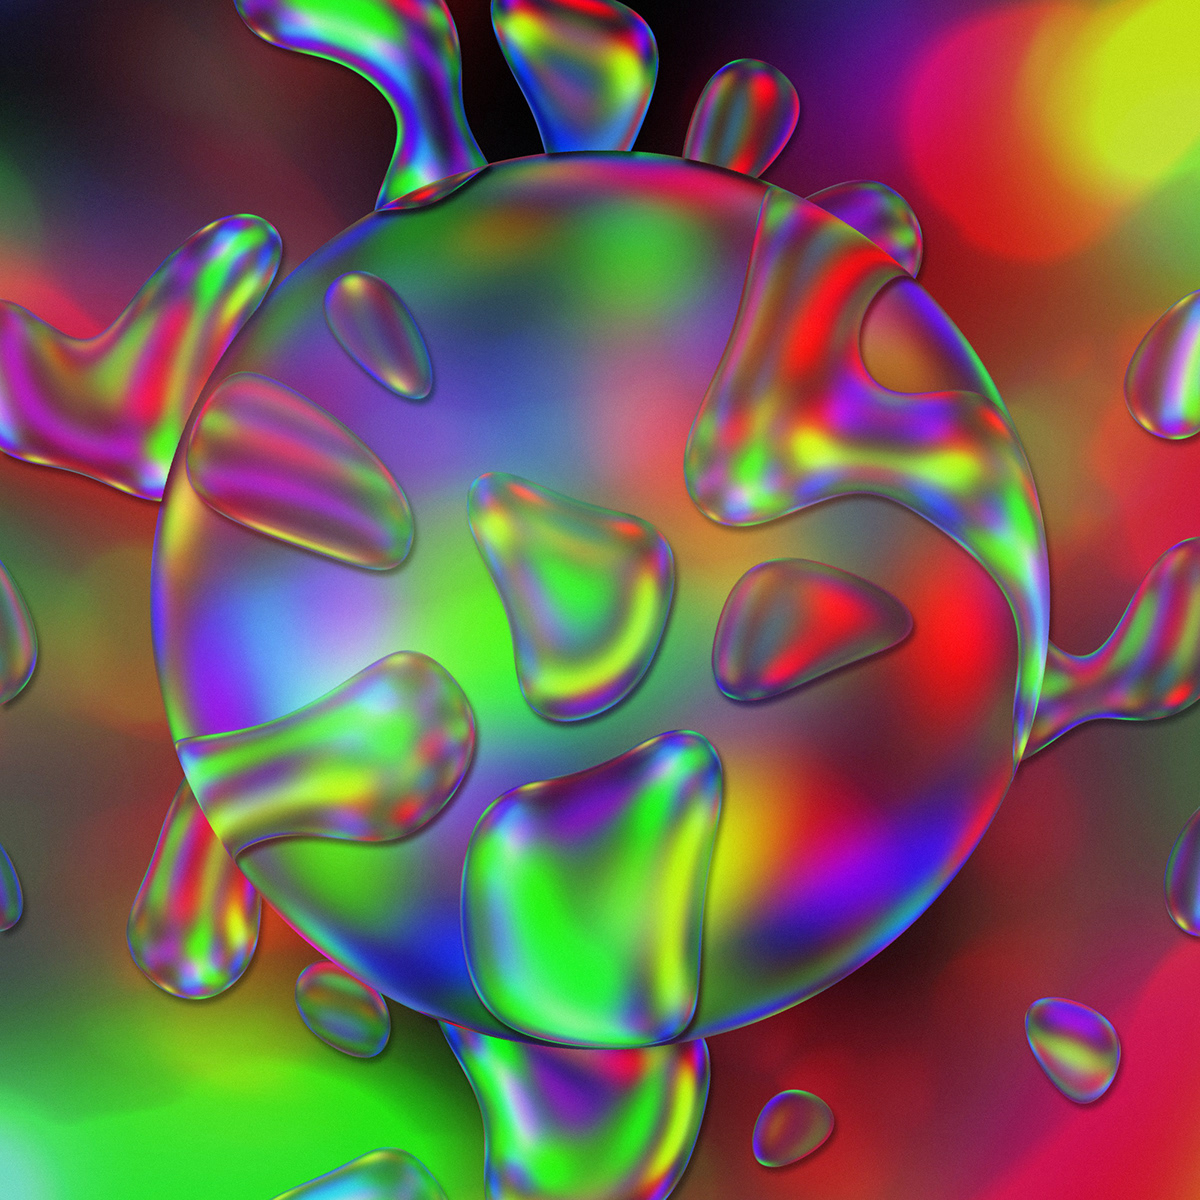 Image may contain: abstract, bubble and colorfulness